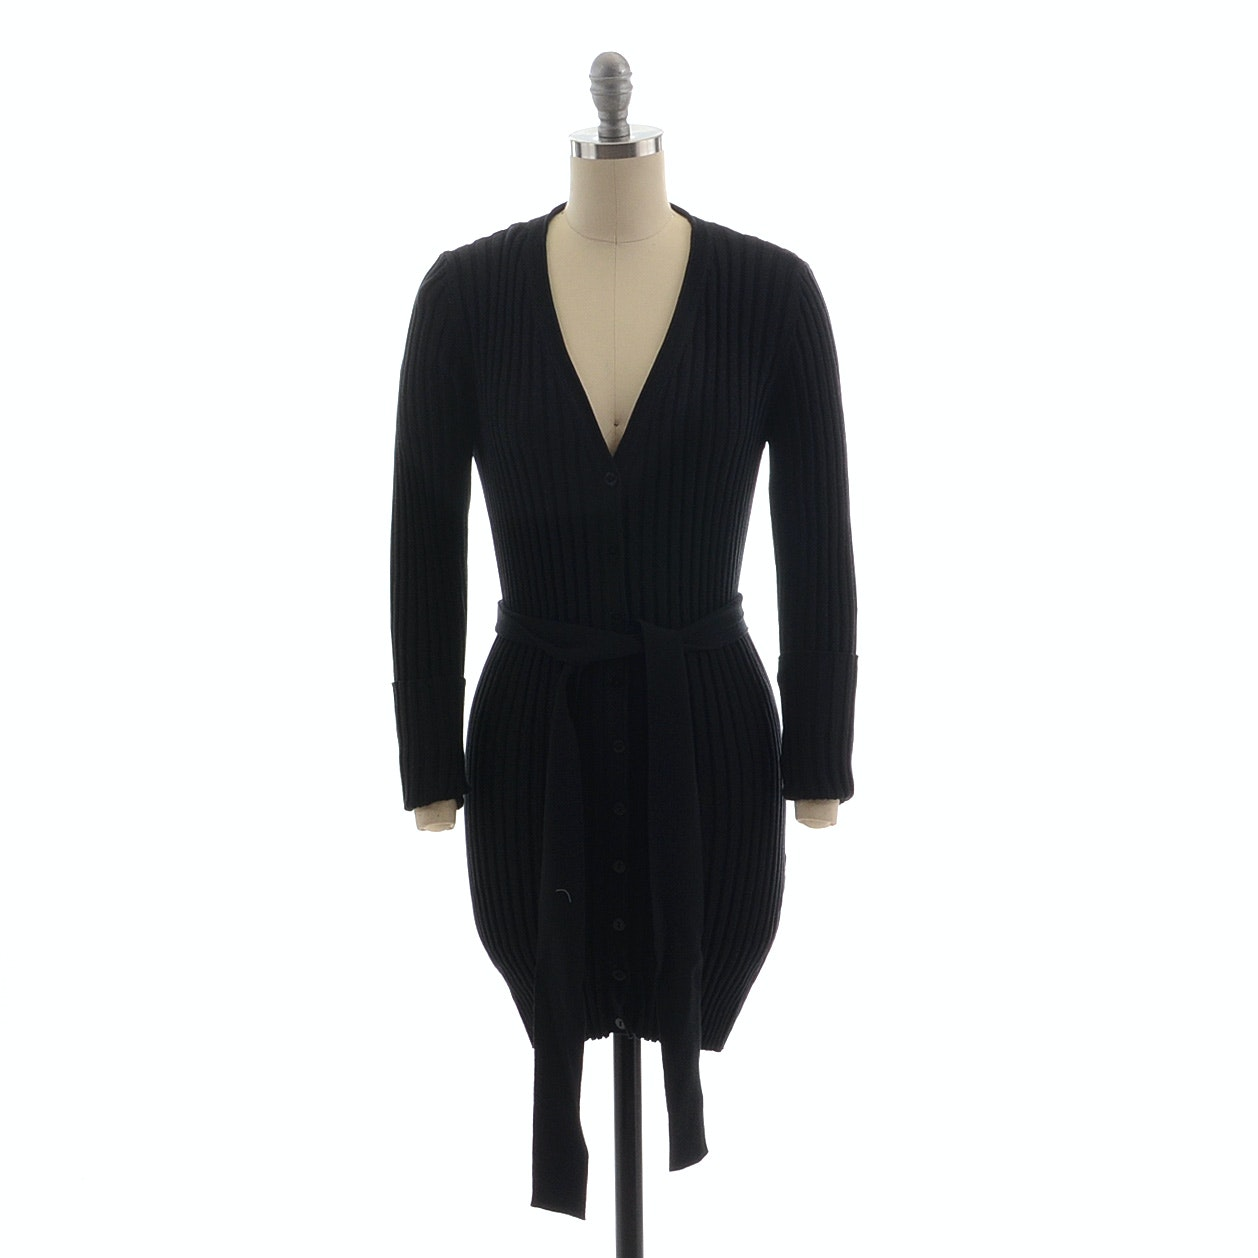 Dolce & Gabbana V-Neck Long Black Button Front Cardigan with Tie Belt